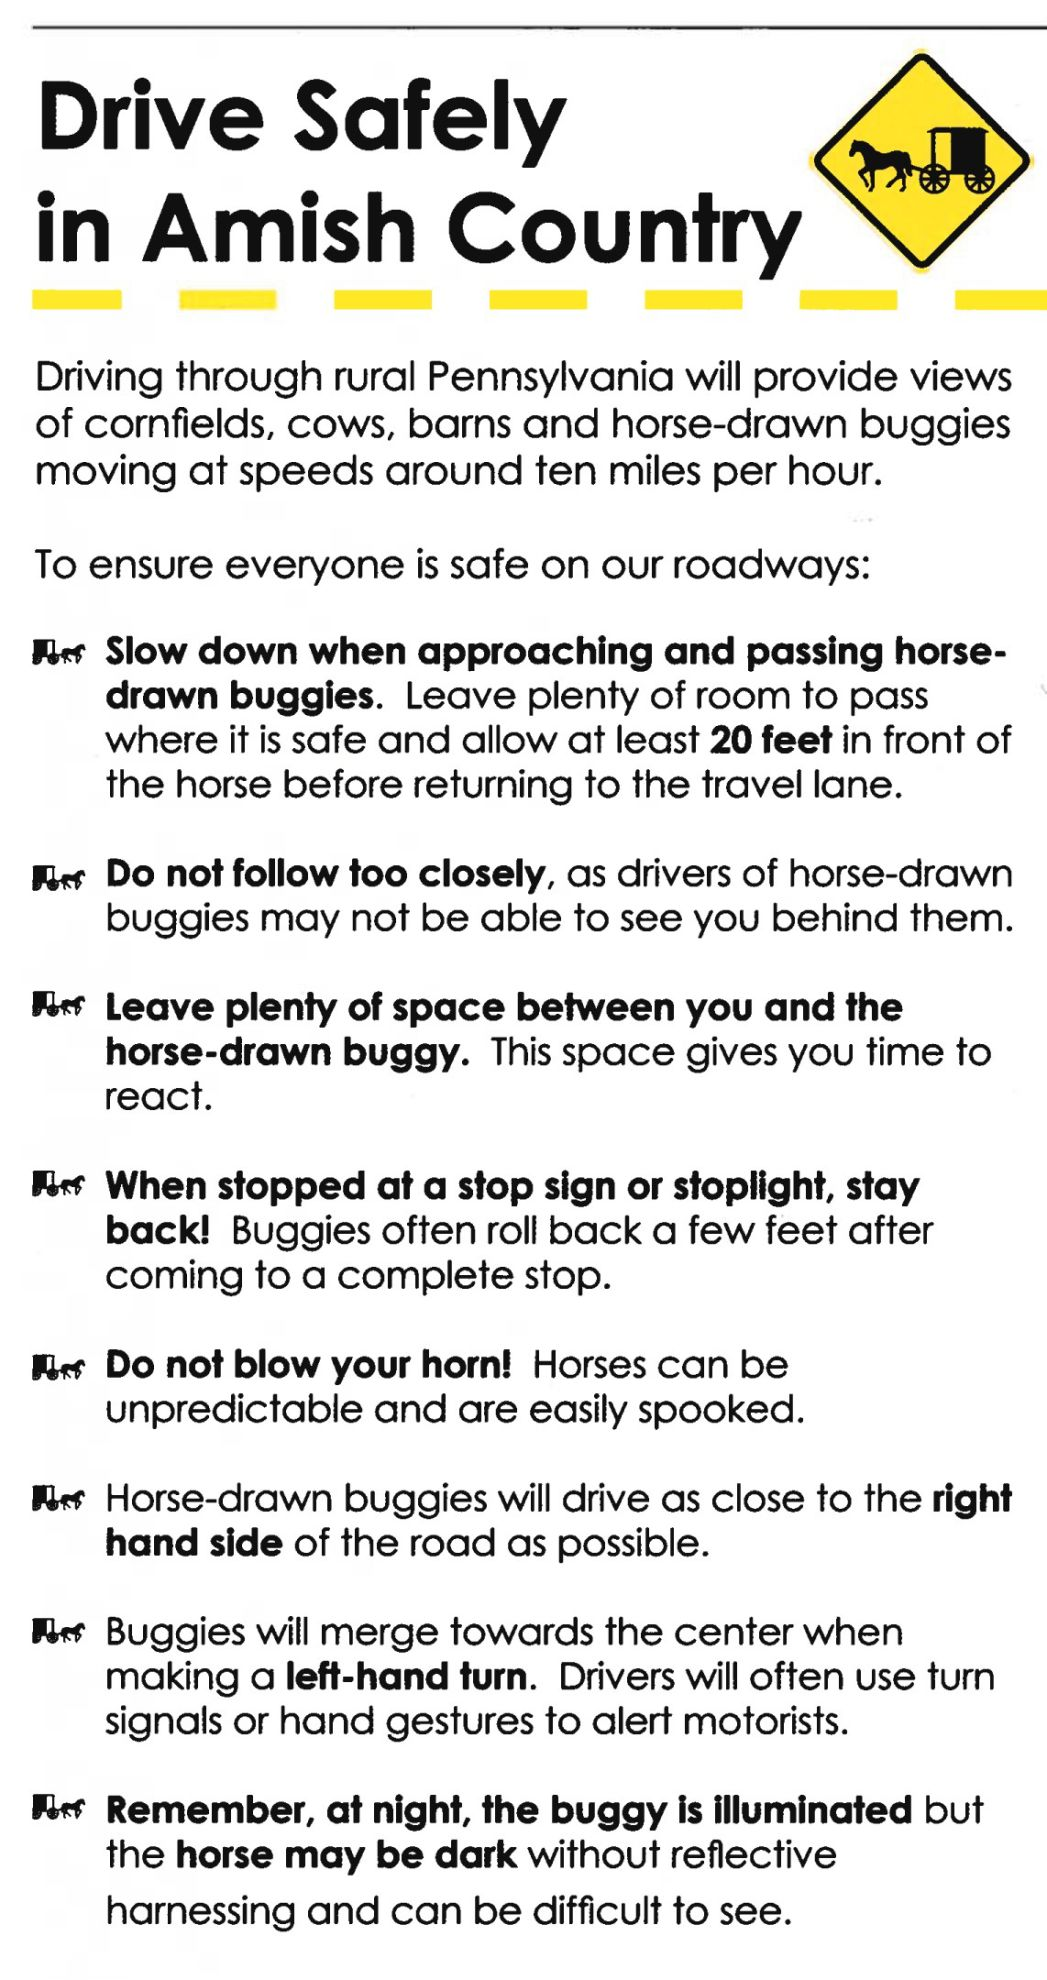 Drive Safely in Amish Country pamphlet